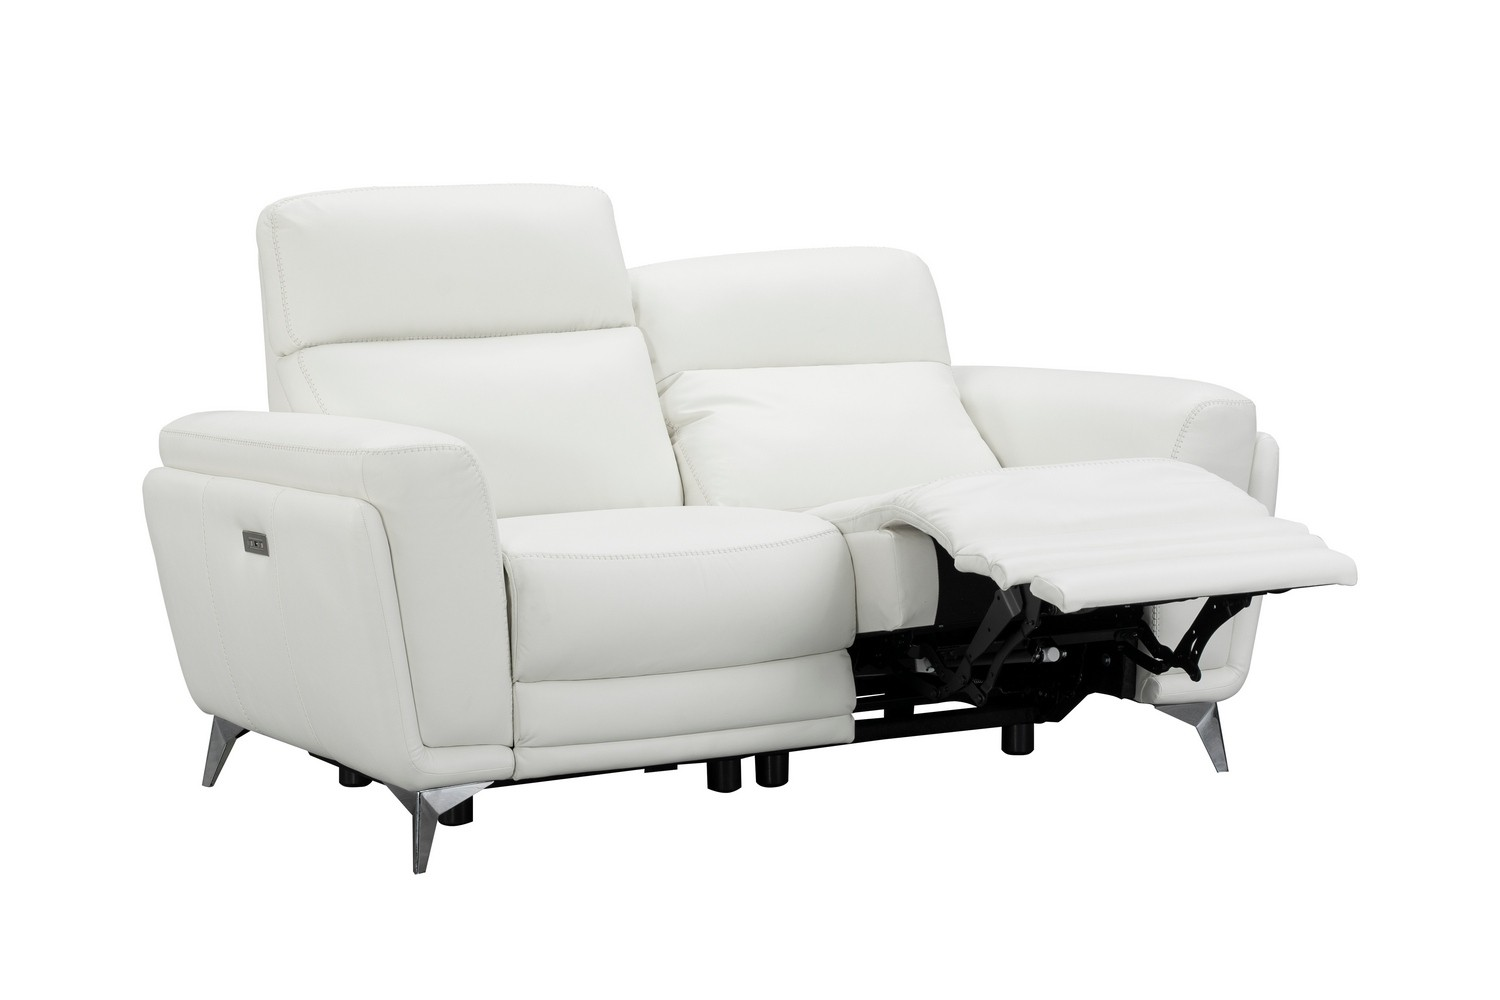 Barcalounger Cameron Power Reclining Loveseat with Power Head Rests - Enzo Winter White/Leather Match